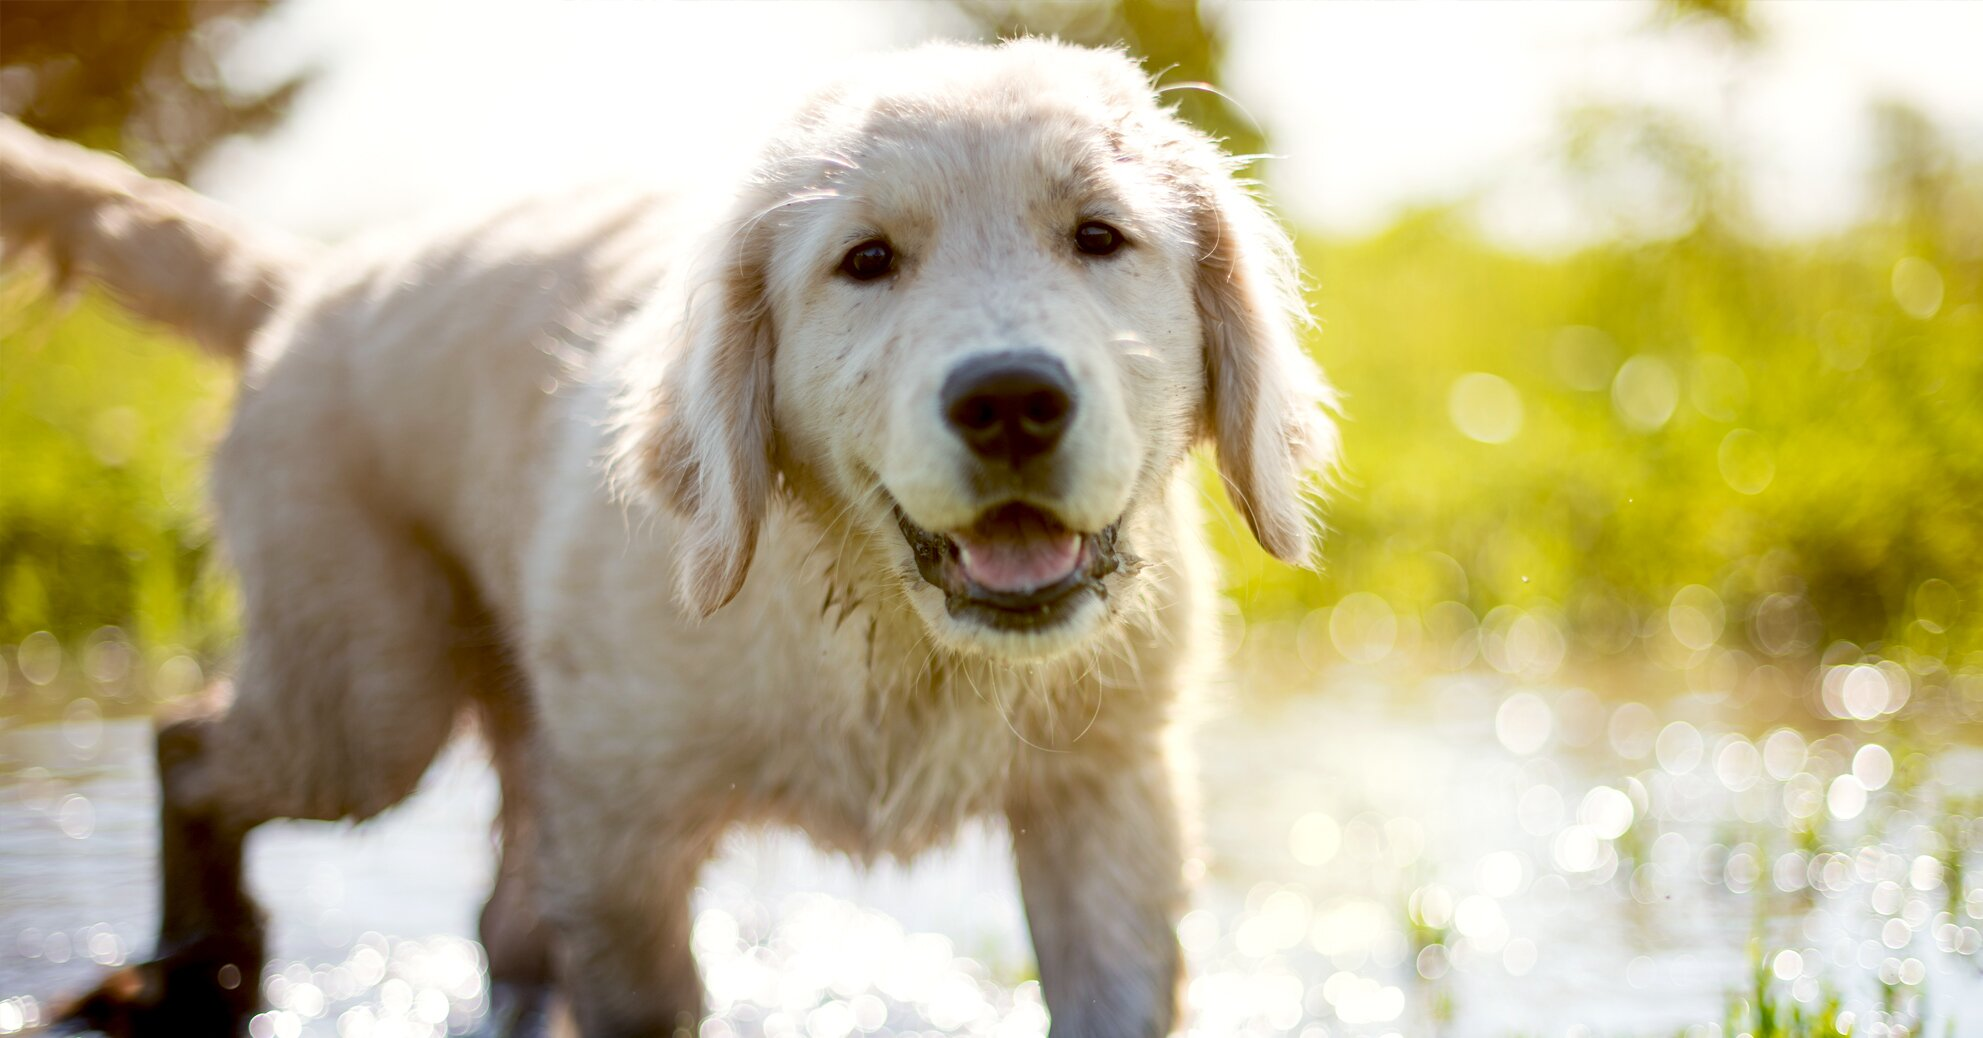 Adolescent Dogs Act Similarly to Teenage Humans, New Study Suggests